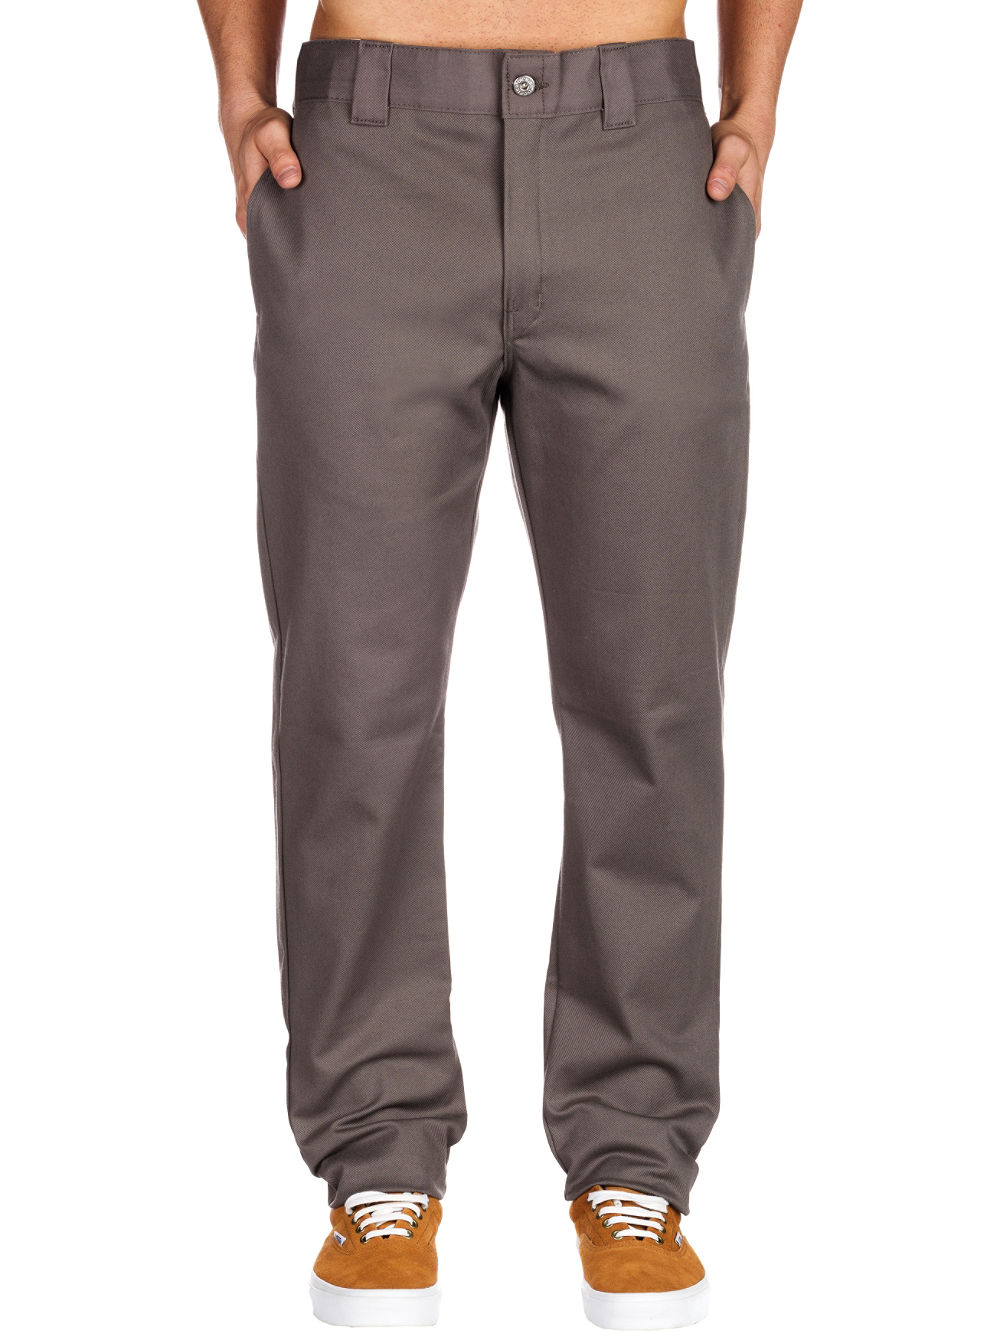 buy dickies slim skinny work pants online at blue. Black Bedroom Furniture Sets. Home Design Ideas